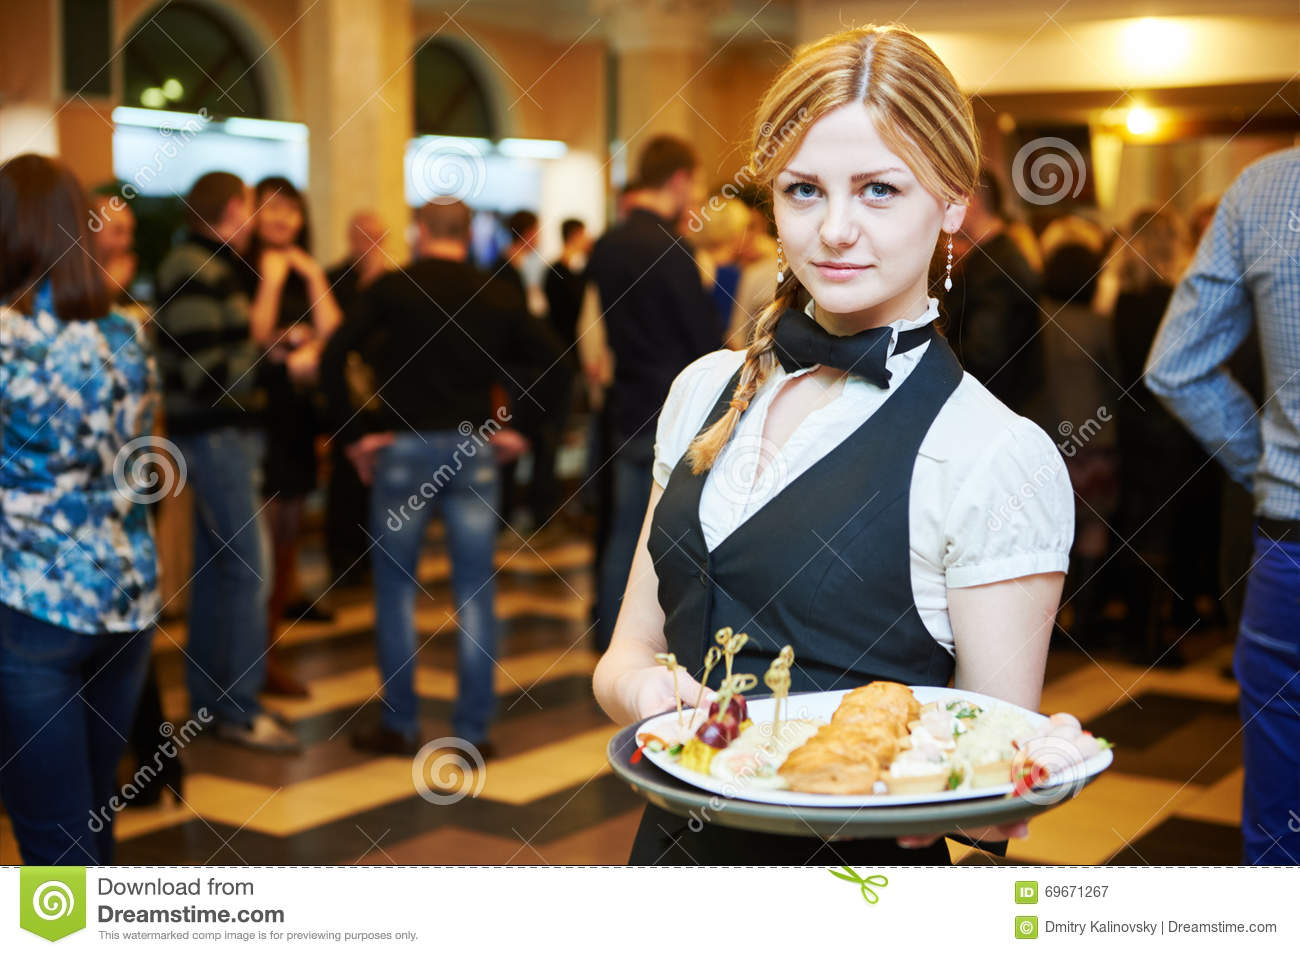 catering service waitress on duty stock image image of cater dining 69671267. Black Bedroom Furniture Sets. Home Design Ideas